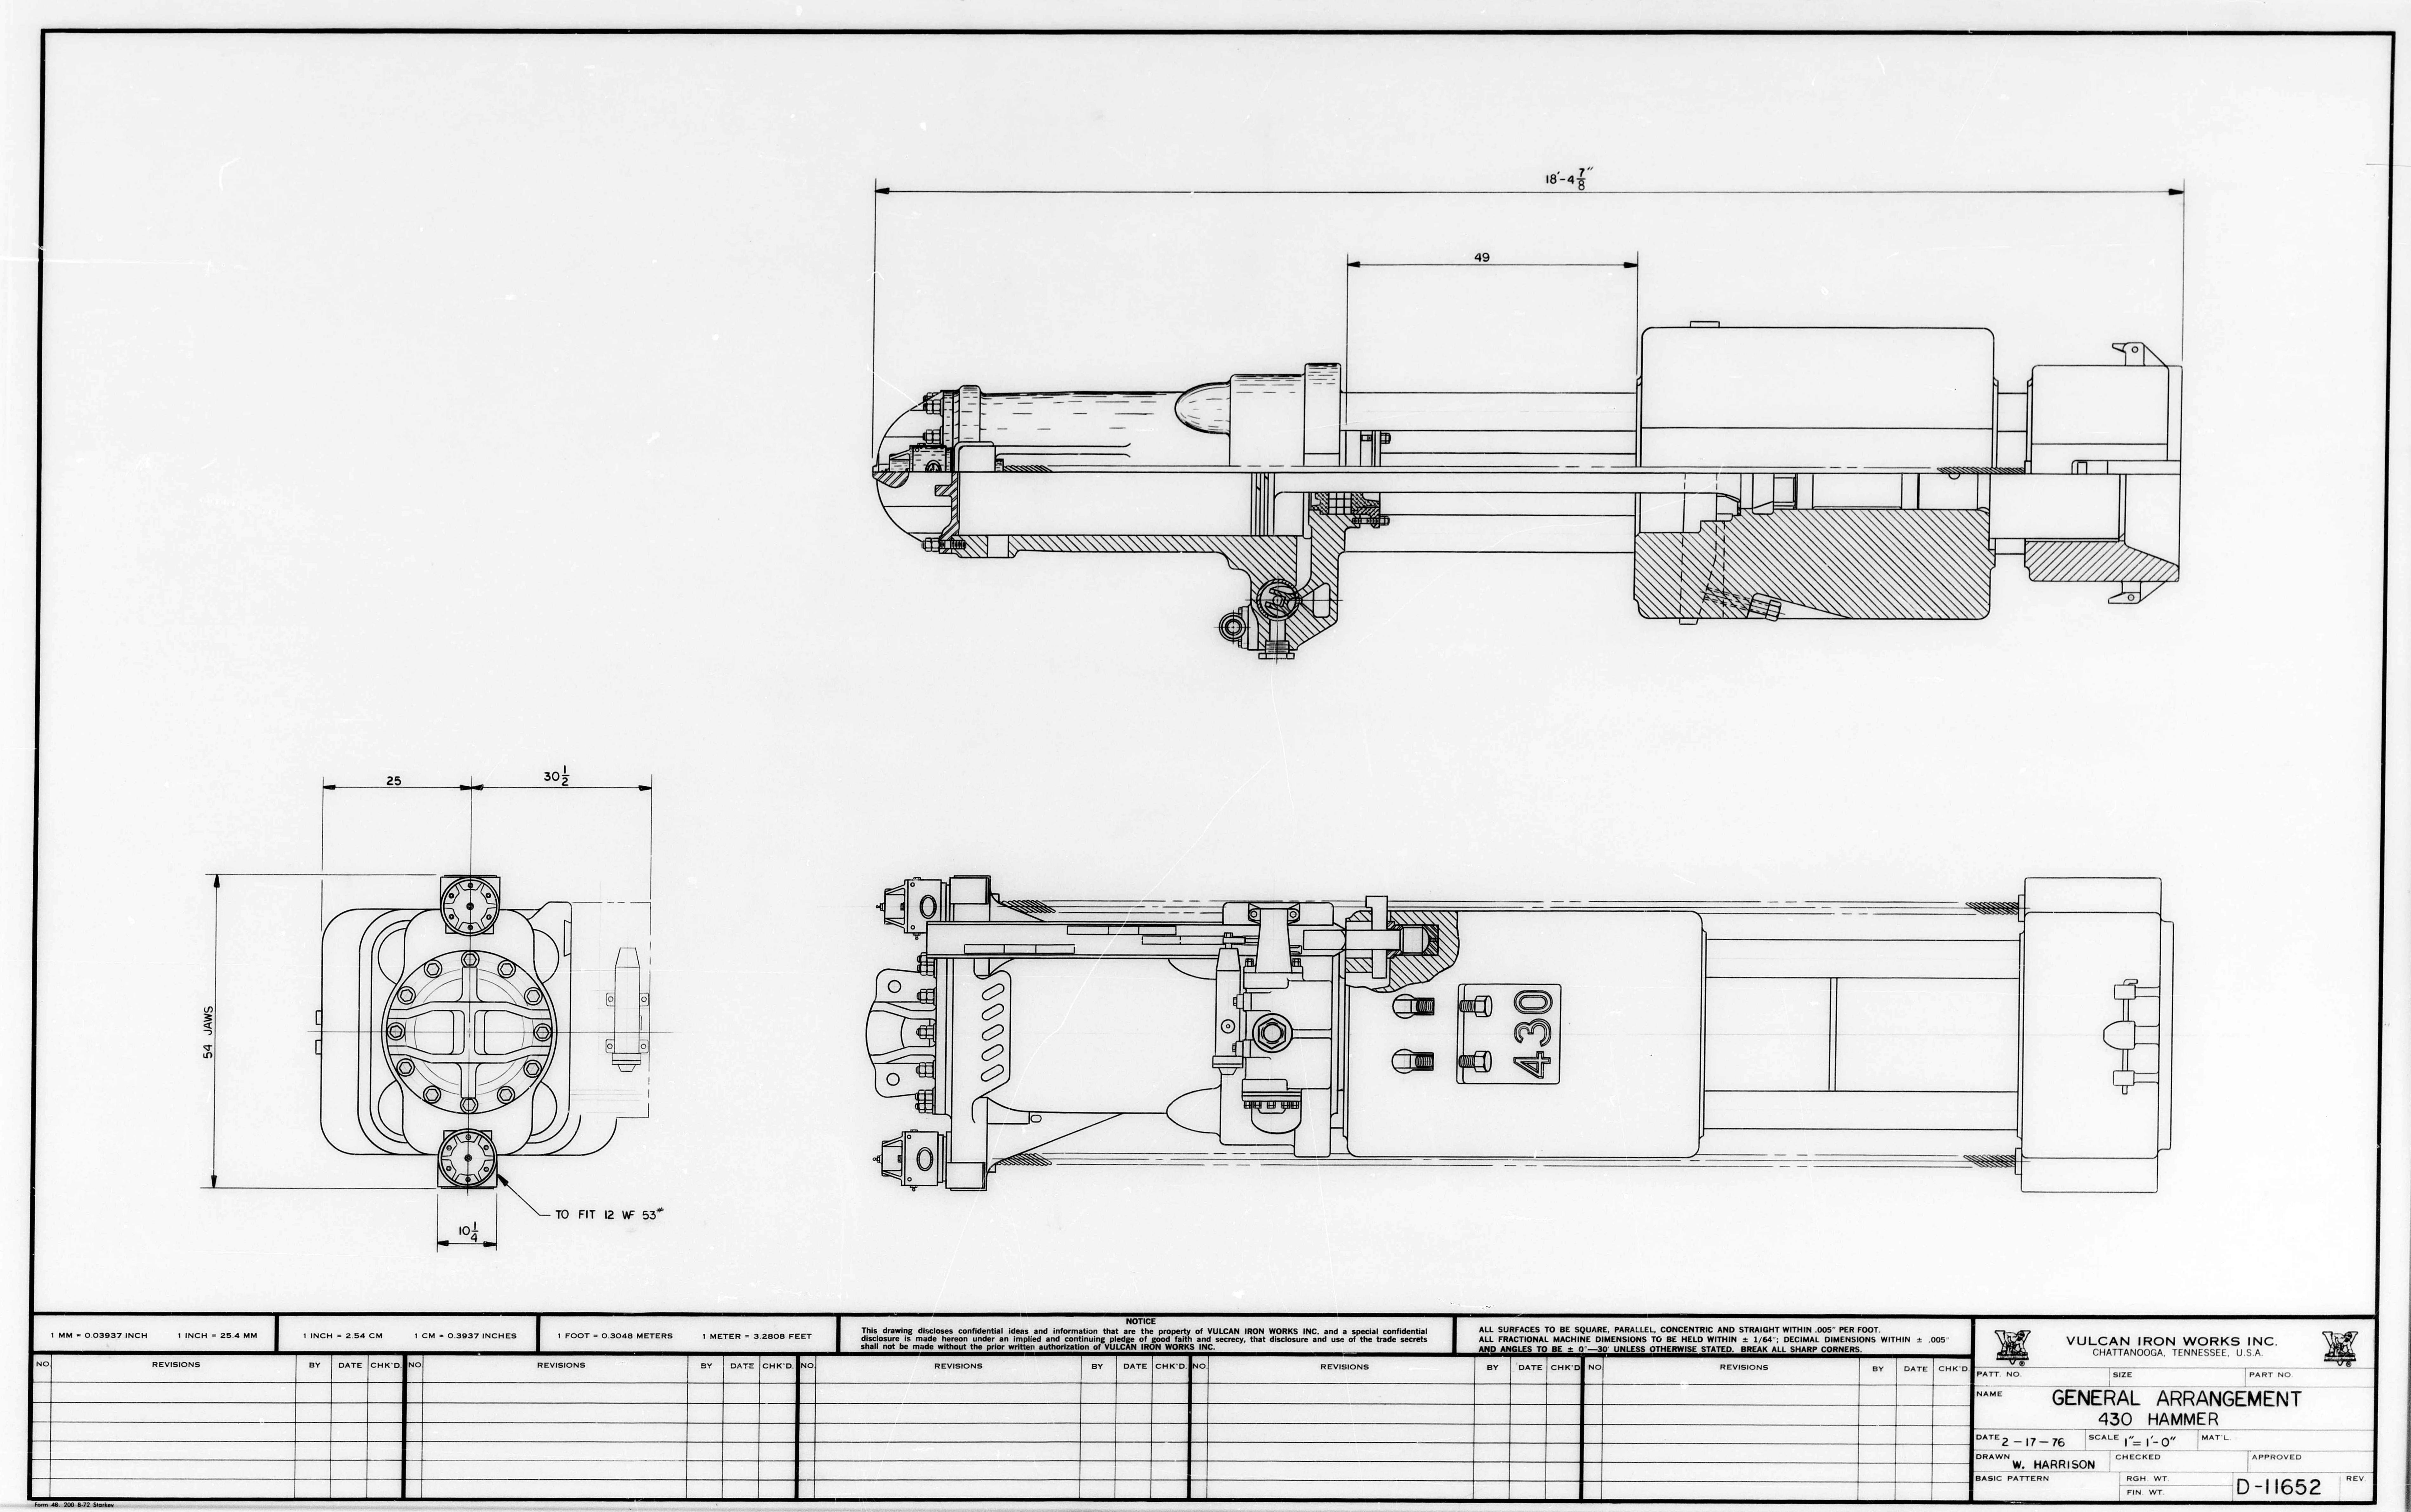 Vulcan 810 Hydraulic Wiring Diagram Great Installation Of Solenoid Pump Motor Proposed Hammers During The 1960 S And 1970 Vulcanhammer Info Rh Circuit